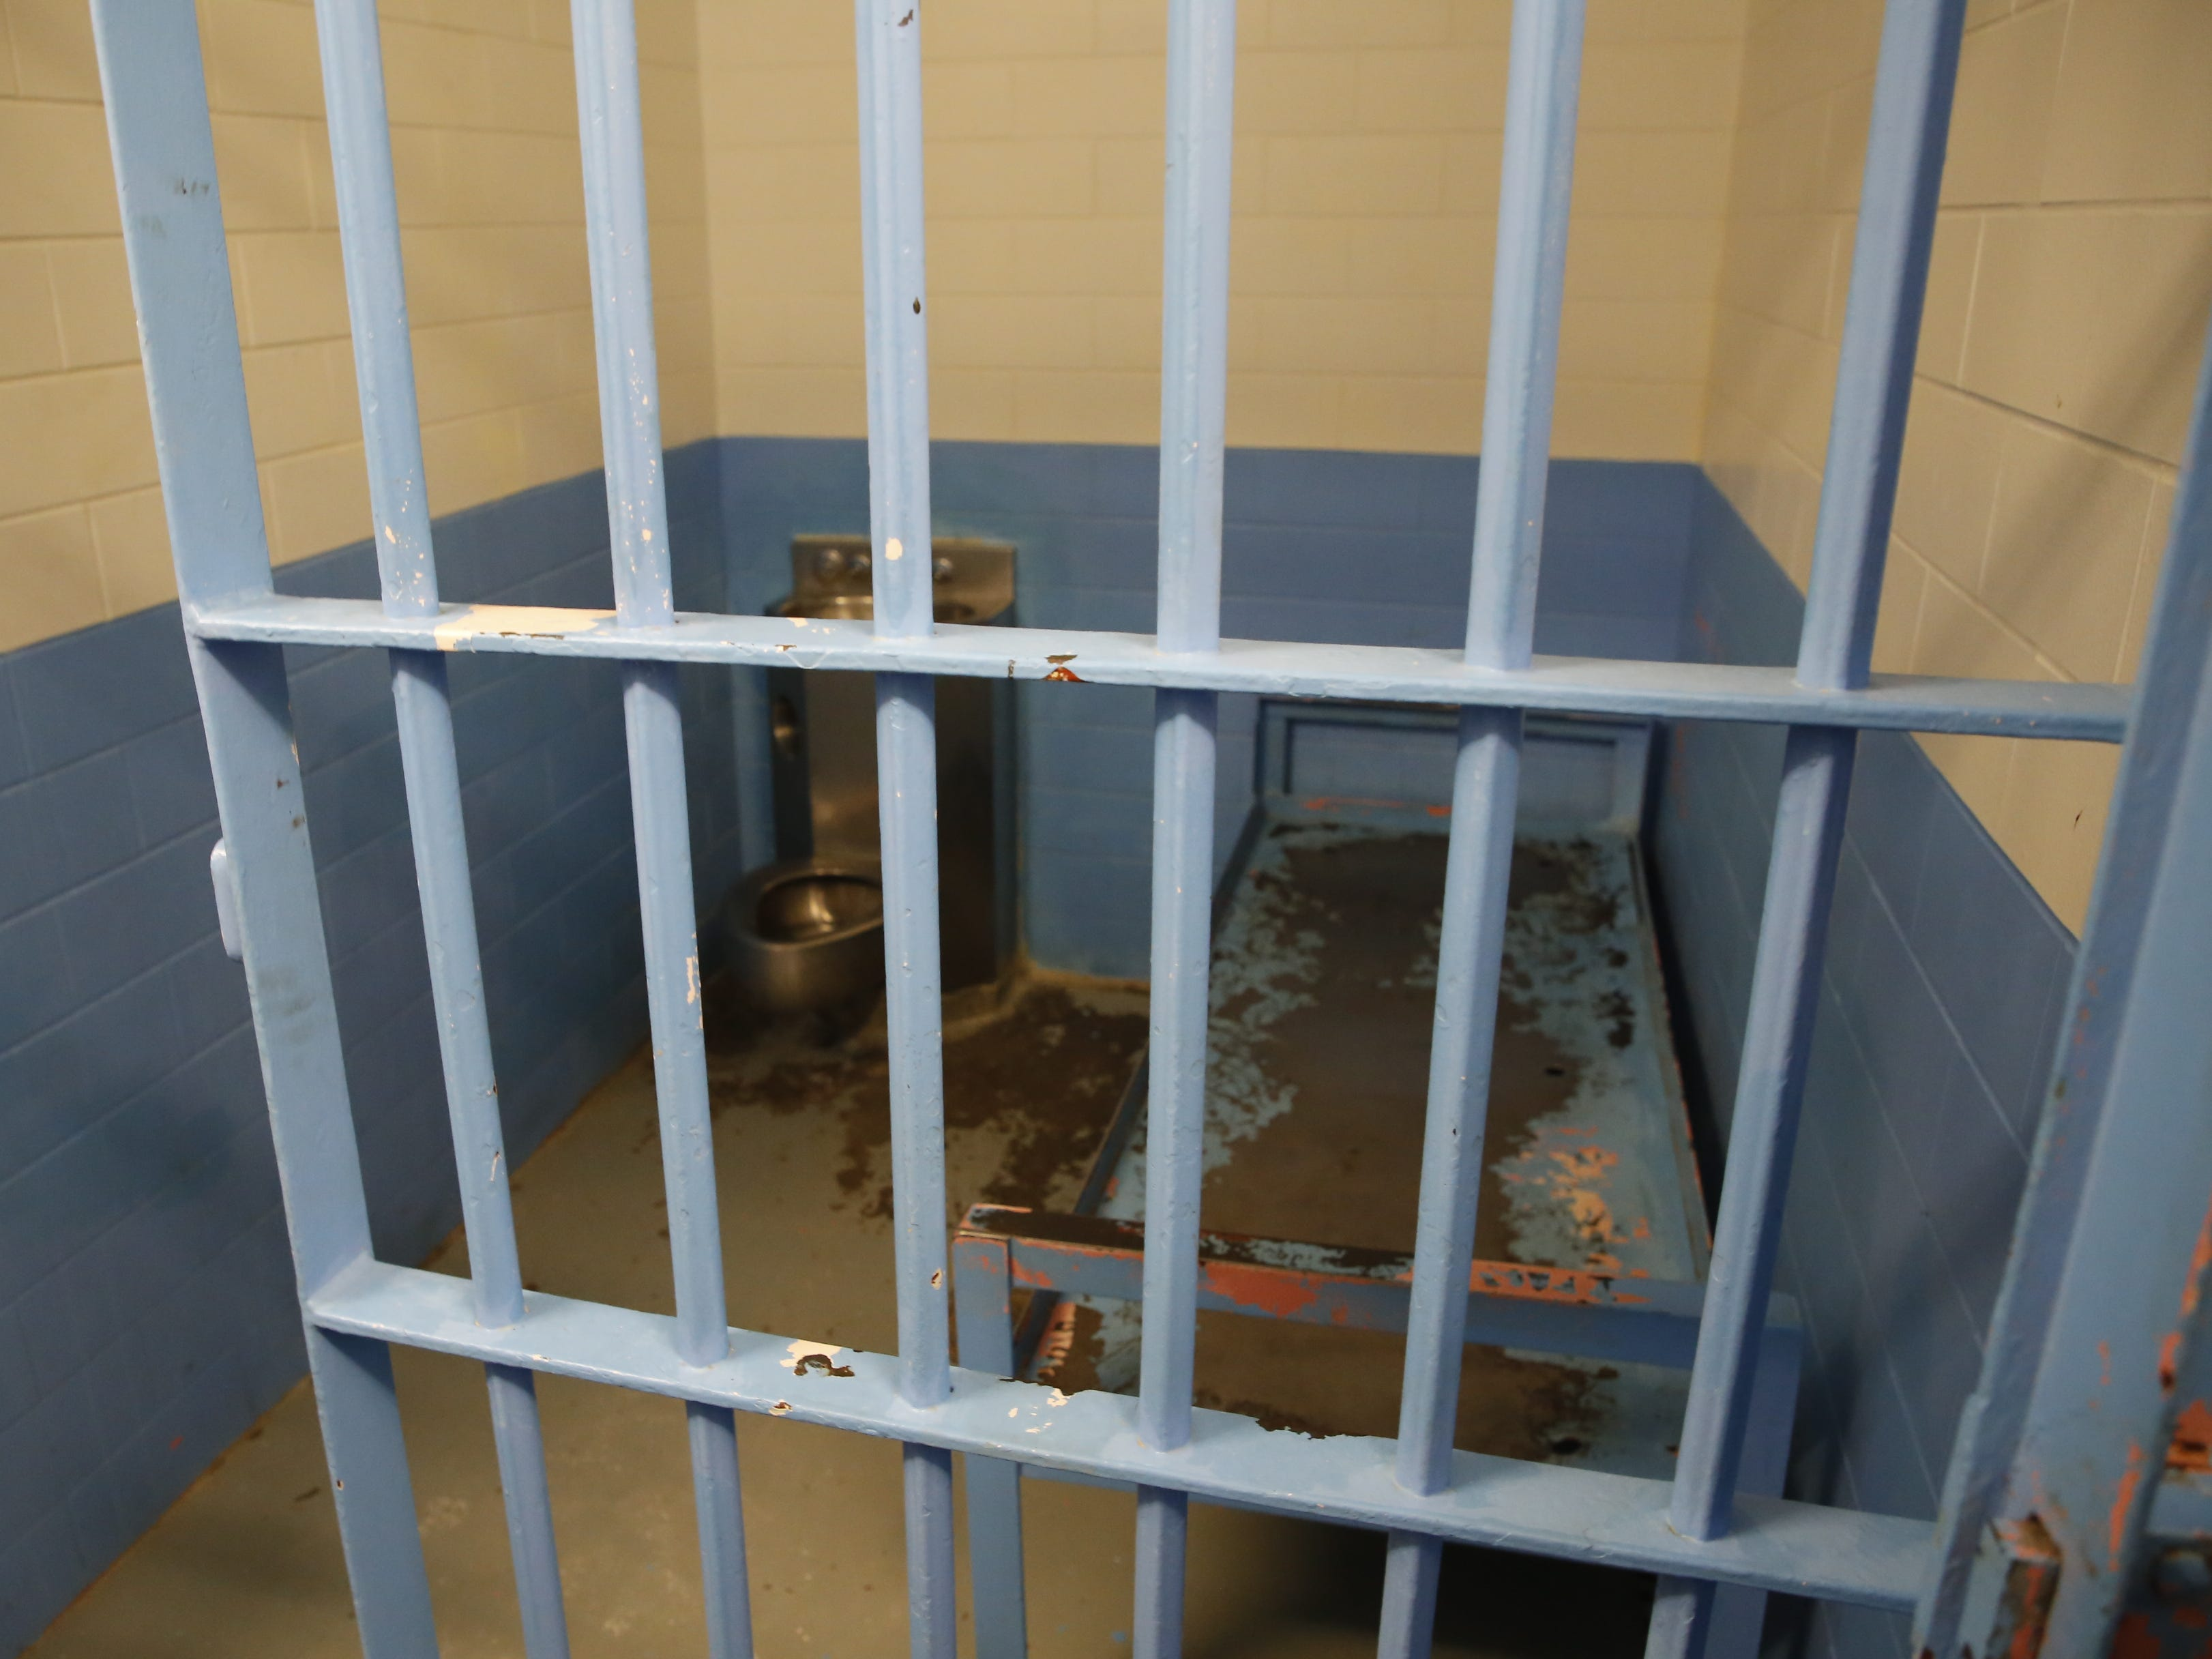 A jail cell was shown to U.S. Rep. Ben Ray Luján, D-N.M., during a tour of the Shiprock Police Department on Friday.